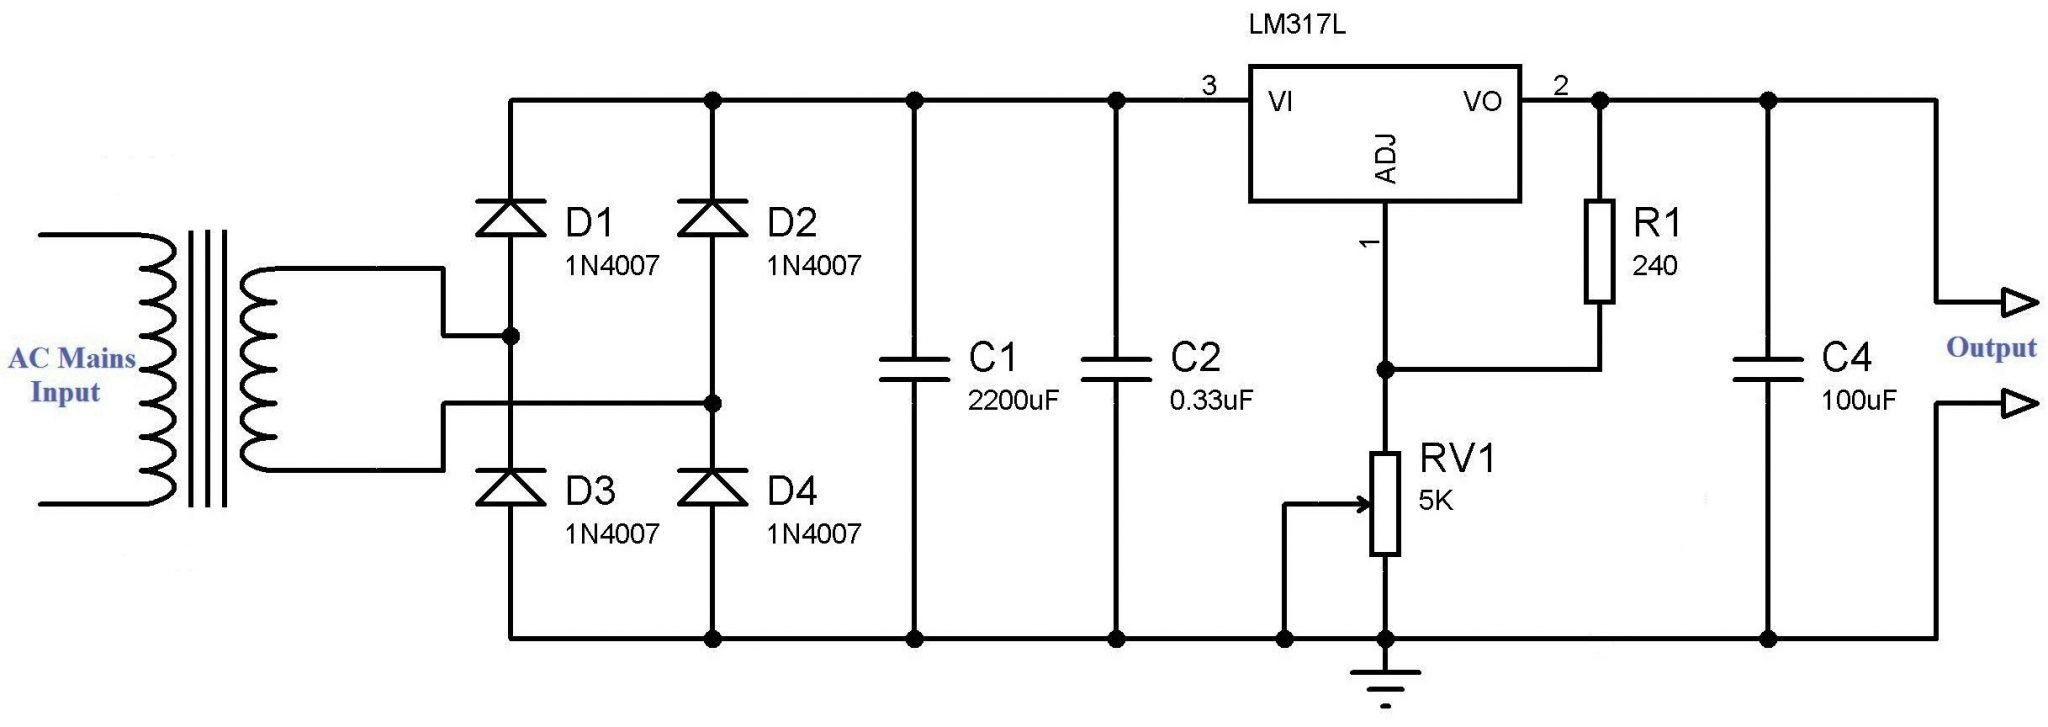 Simple Circuit Diagram. Simple Variable Power Supply using LM317